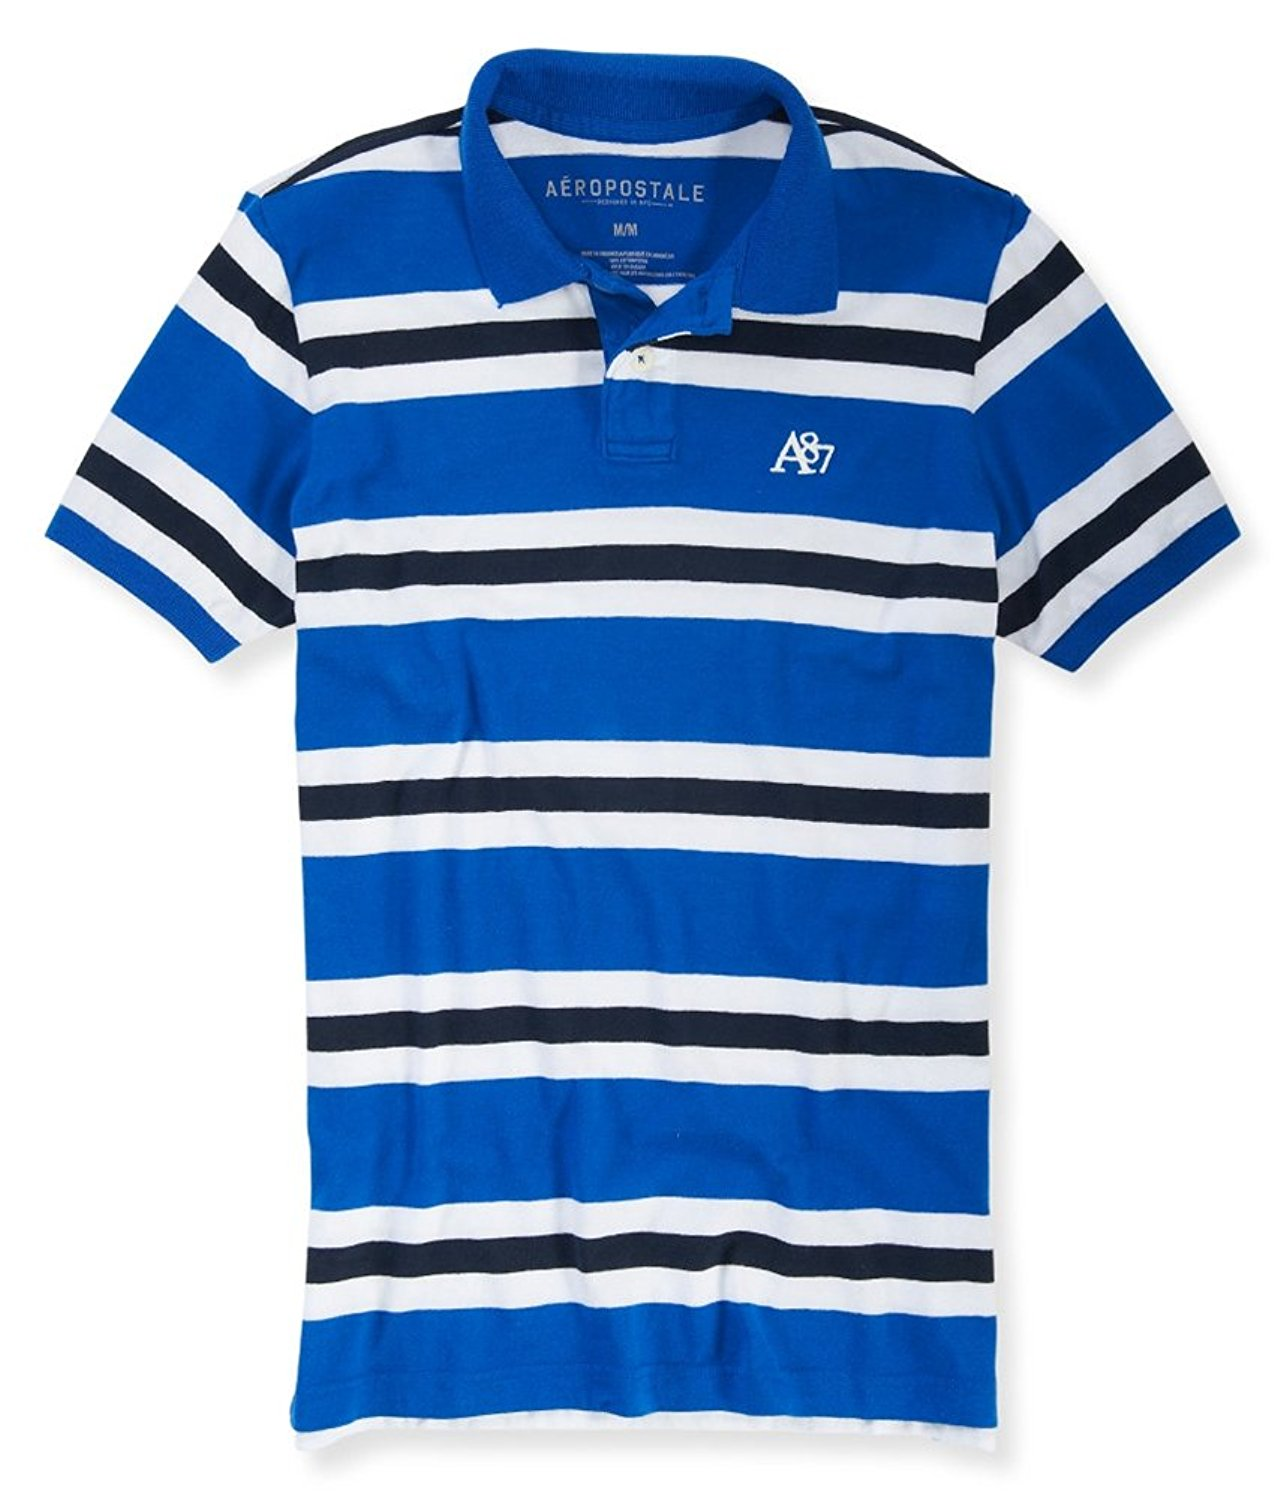 03d4bfa1556 Buy Aeropostale Mens Striped Embroidered Rugby Polo Shirt in Cheap ...